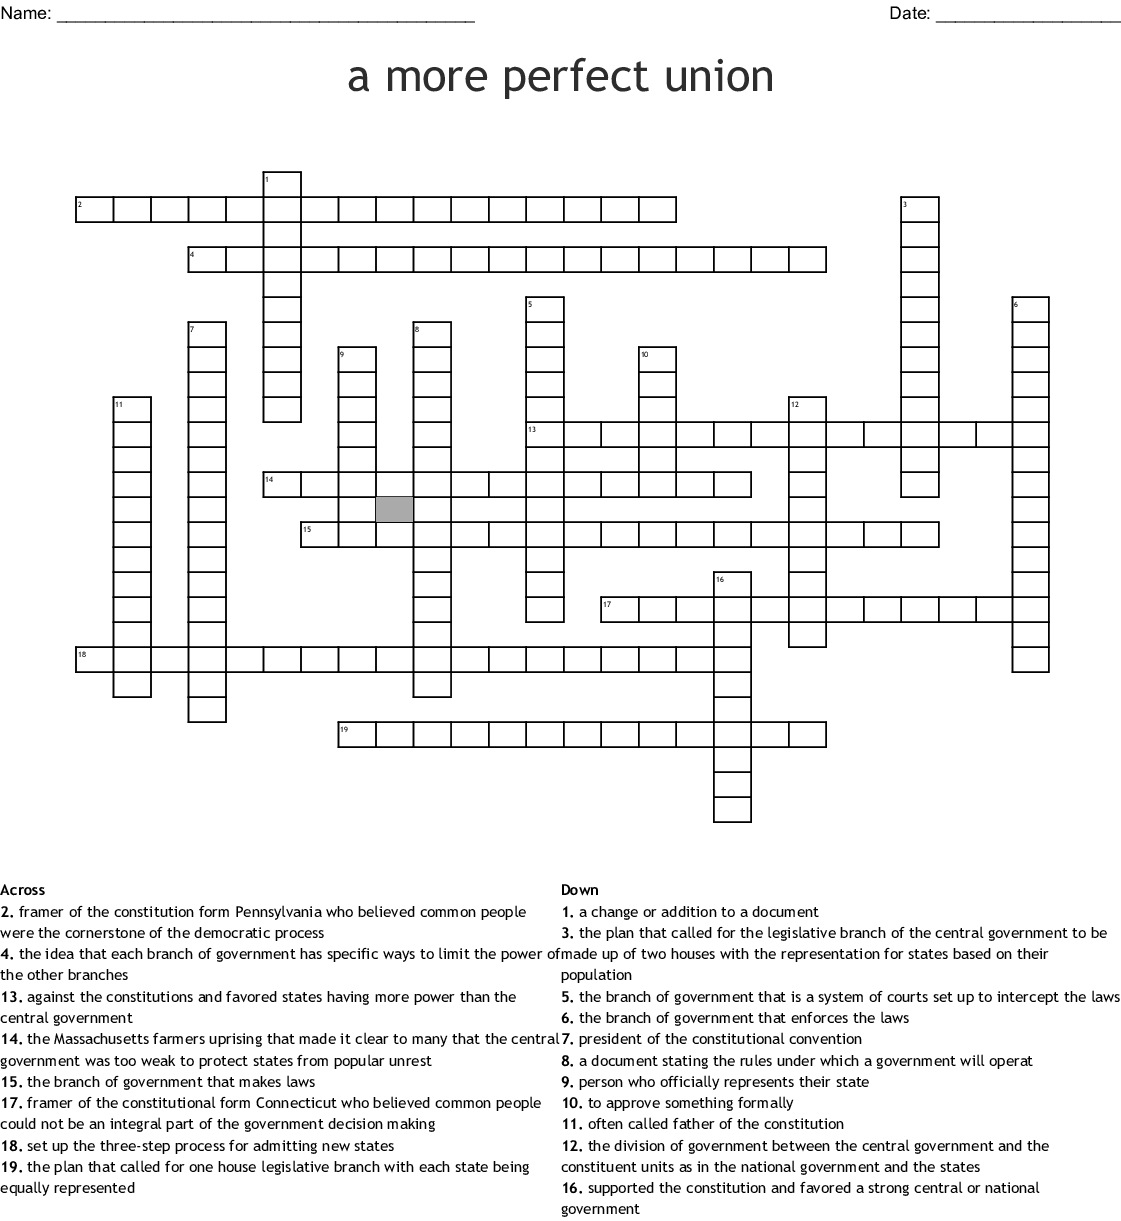 A More Perfect Union Worksheet Answers